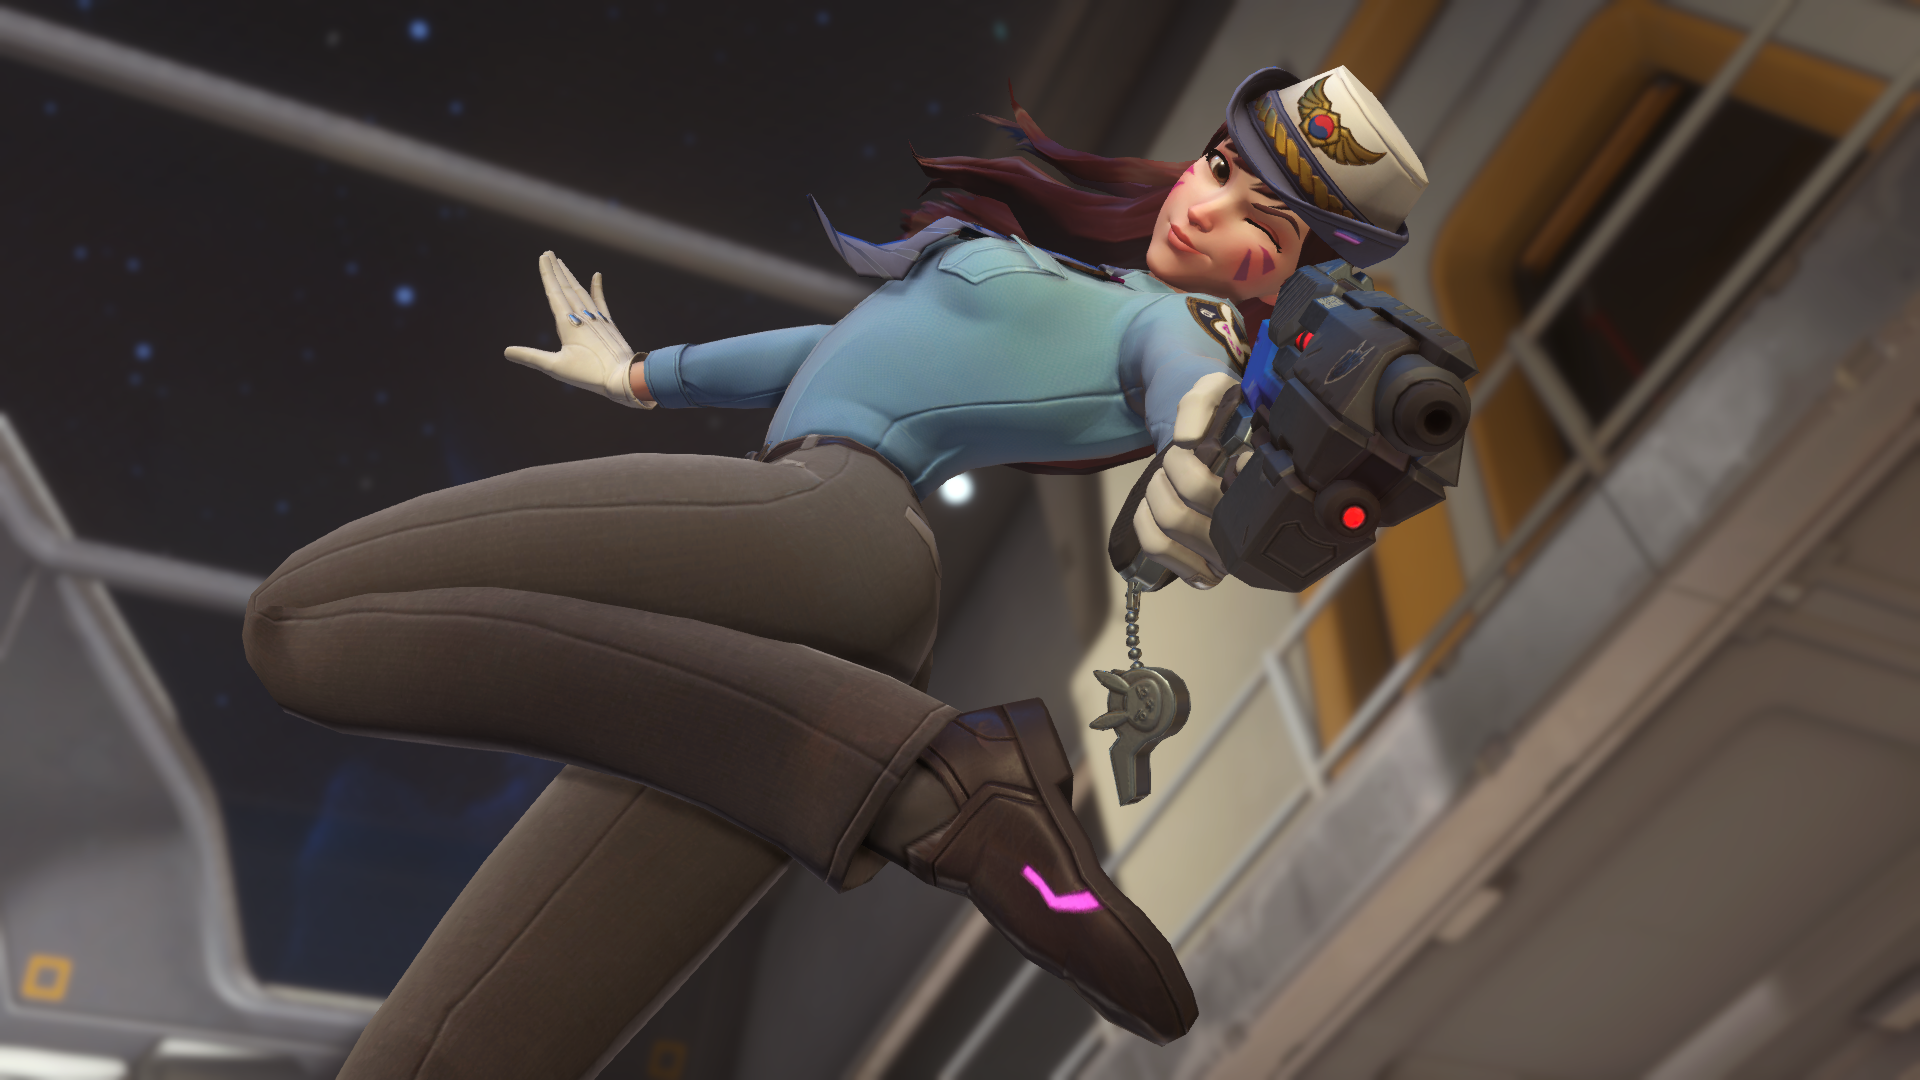 Overwatch S Best Two Skins Officer D Va And Oni Genji Are Now